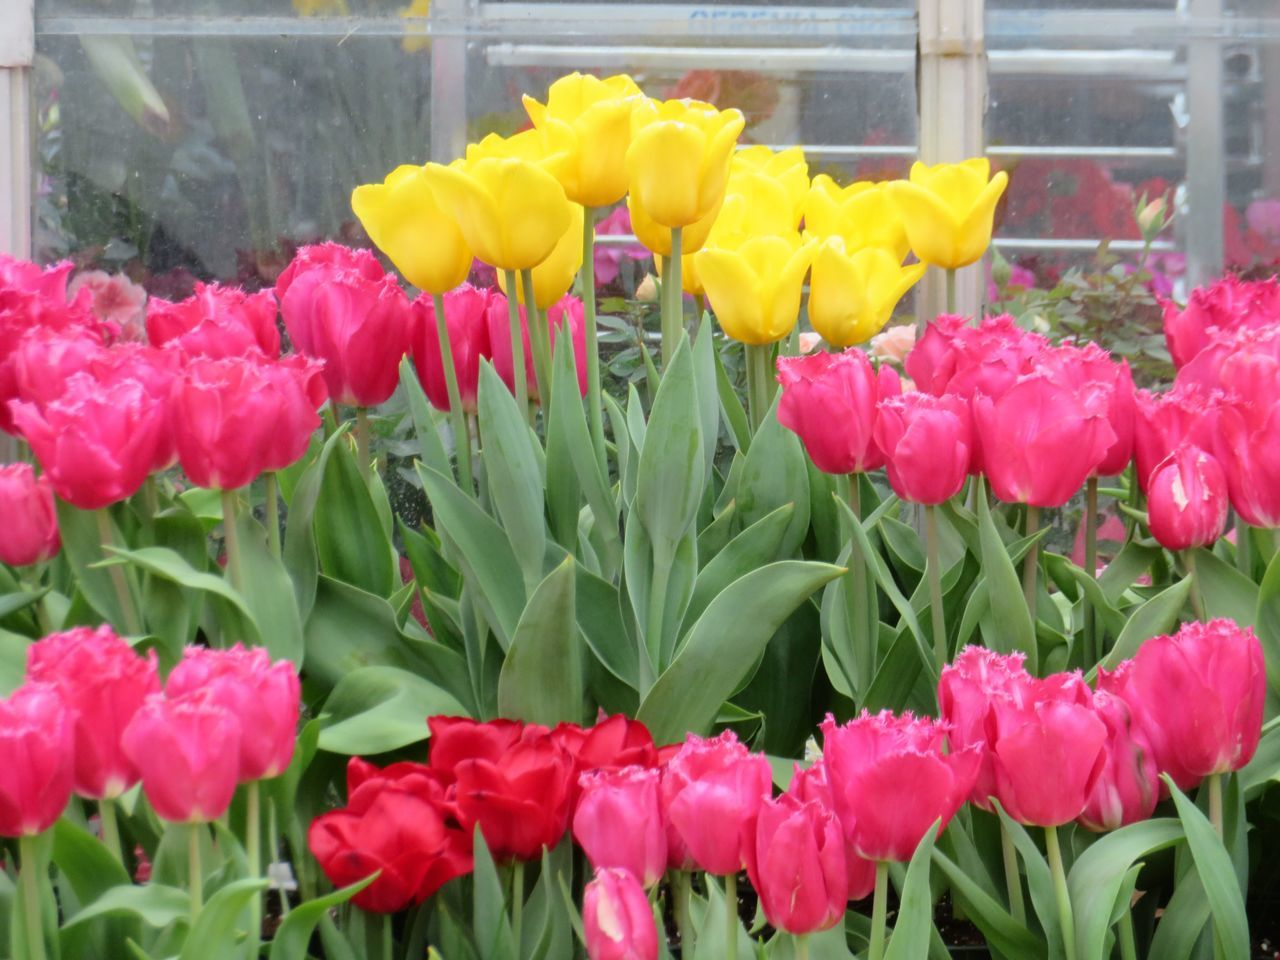 flower, fragility, freshness, petal, growth, beauty in nature, flower head, tulip, nature, pink color, yellow, plant, no people, springtime, day, multi colored, close-up, outdoors, blooming, leaf